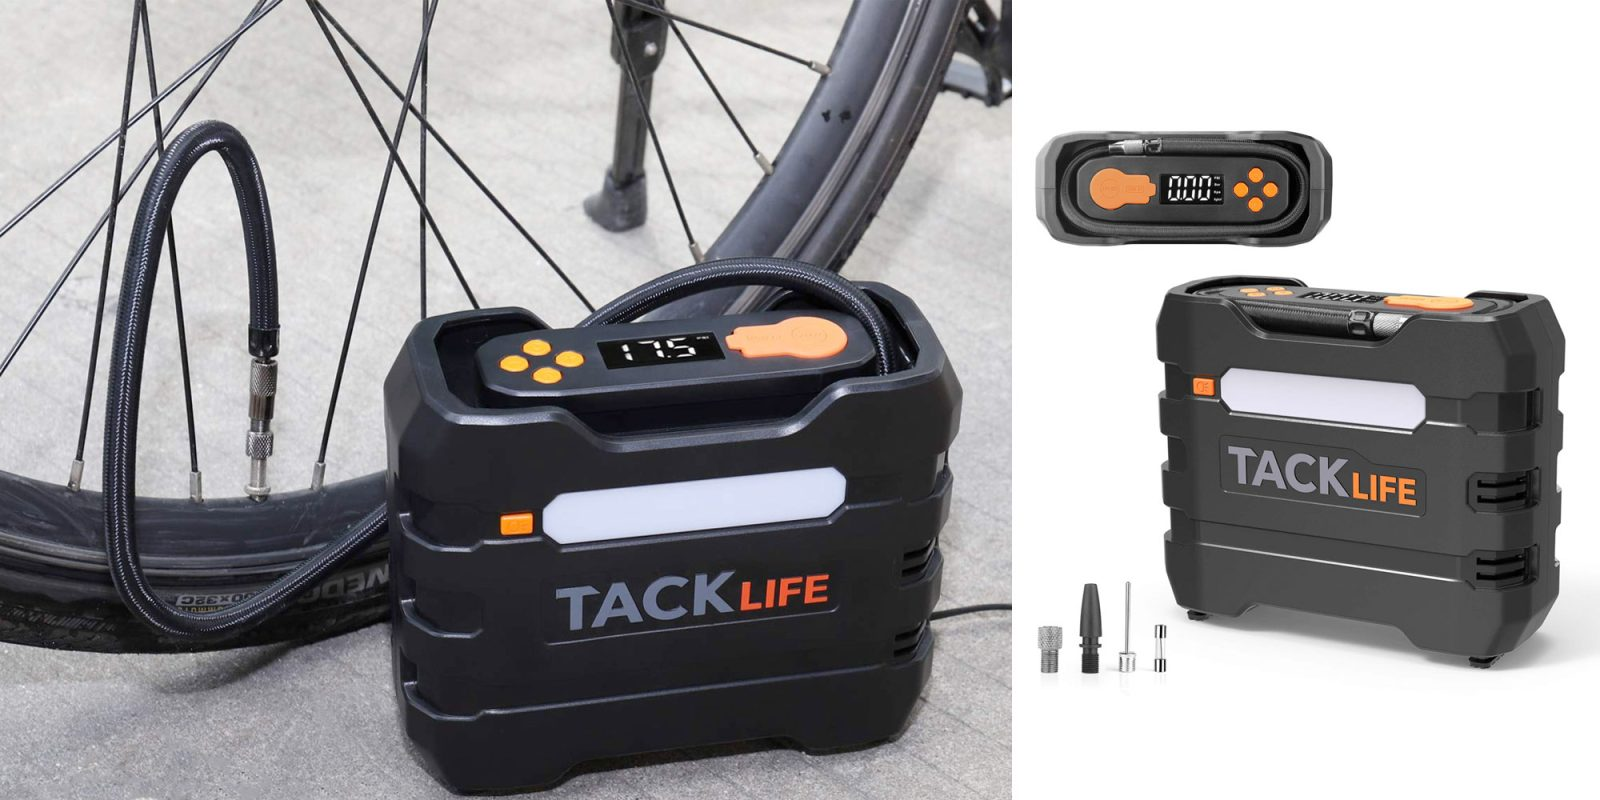 This digital tire inflator makes sure a flat never leaves you stranded for $23